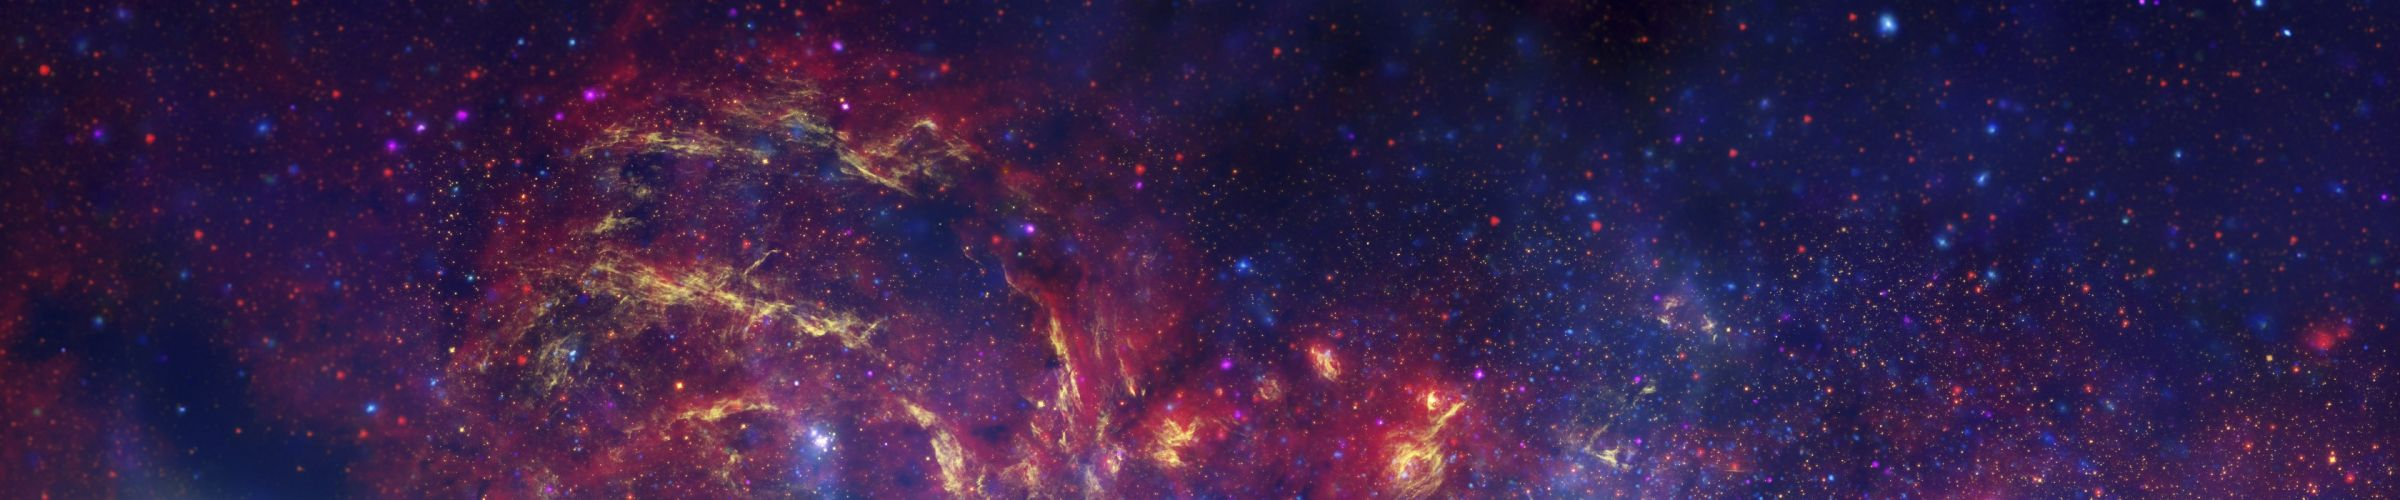 outer space nebulae panoramic wallpaper